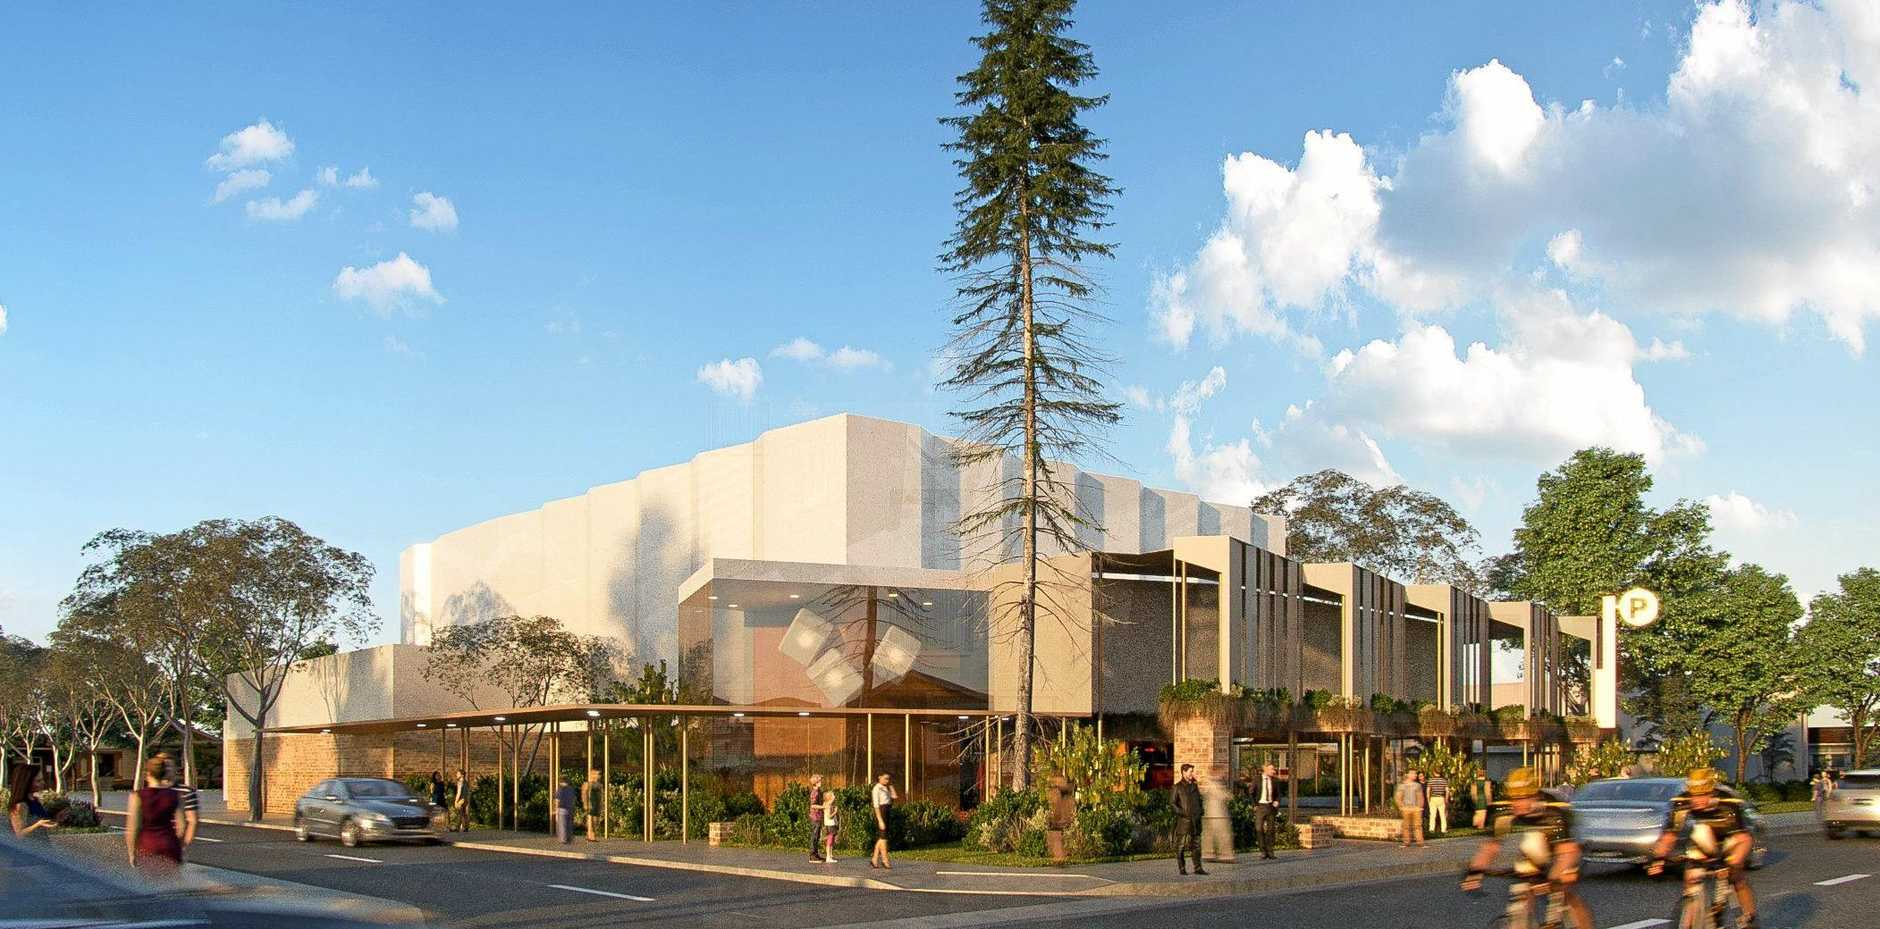 SLICK: The first look at the new Proserpine Entertainment Centre design.